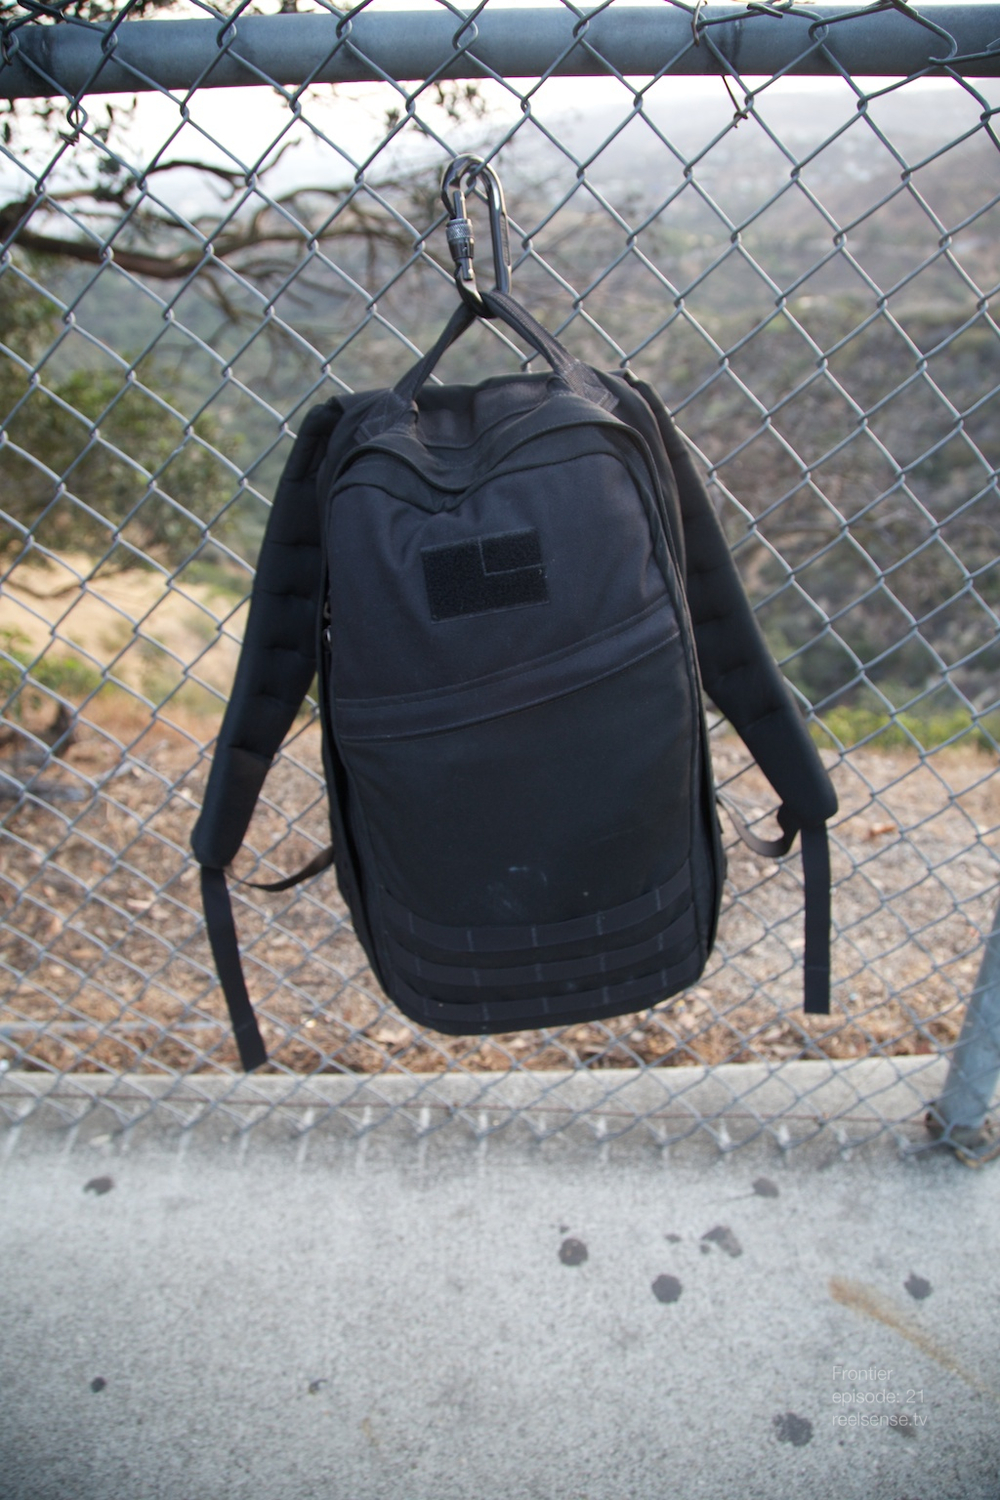 Griffith Observatory - Los Angeles - GORUCK GR1 camera bag hanging on fence via carabiner